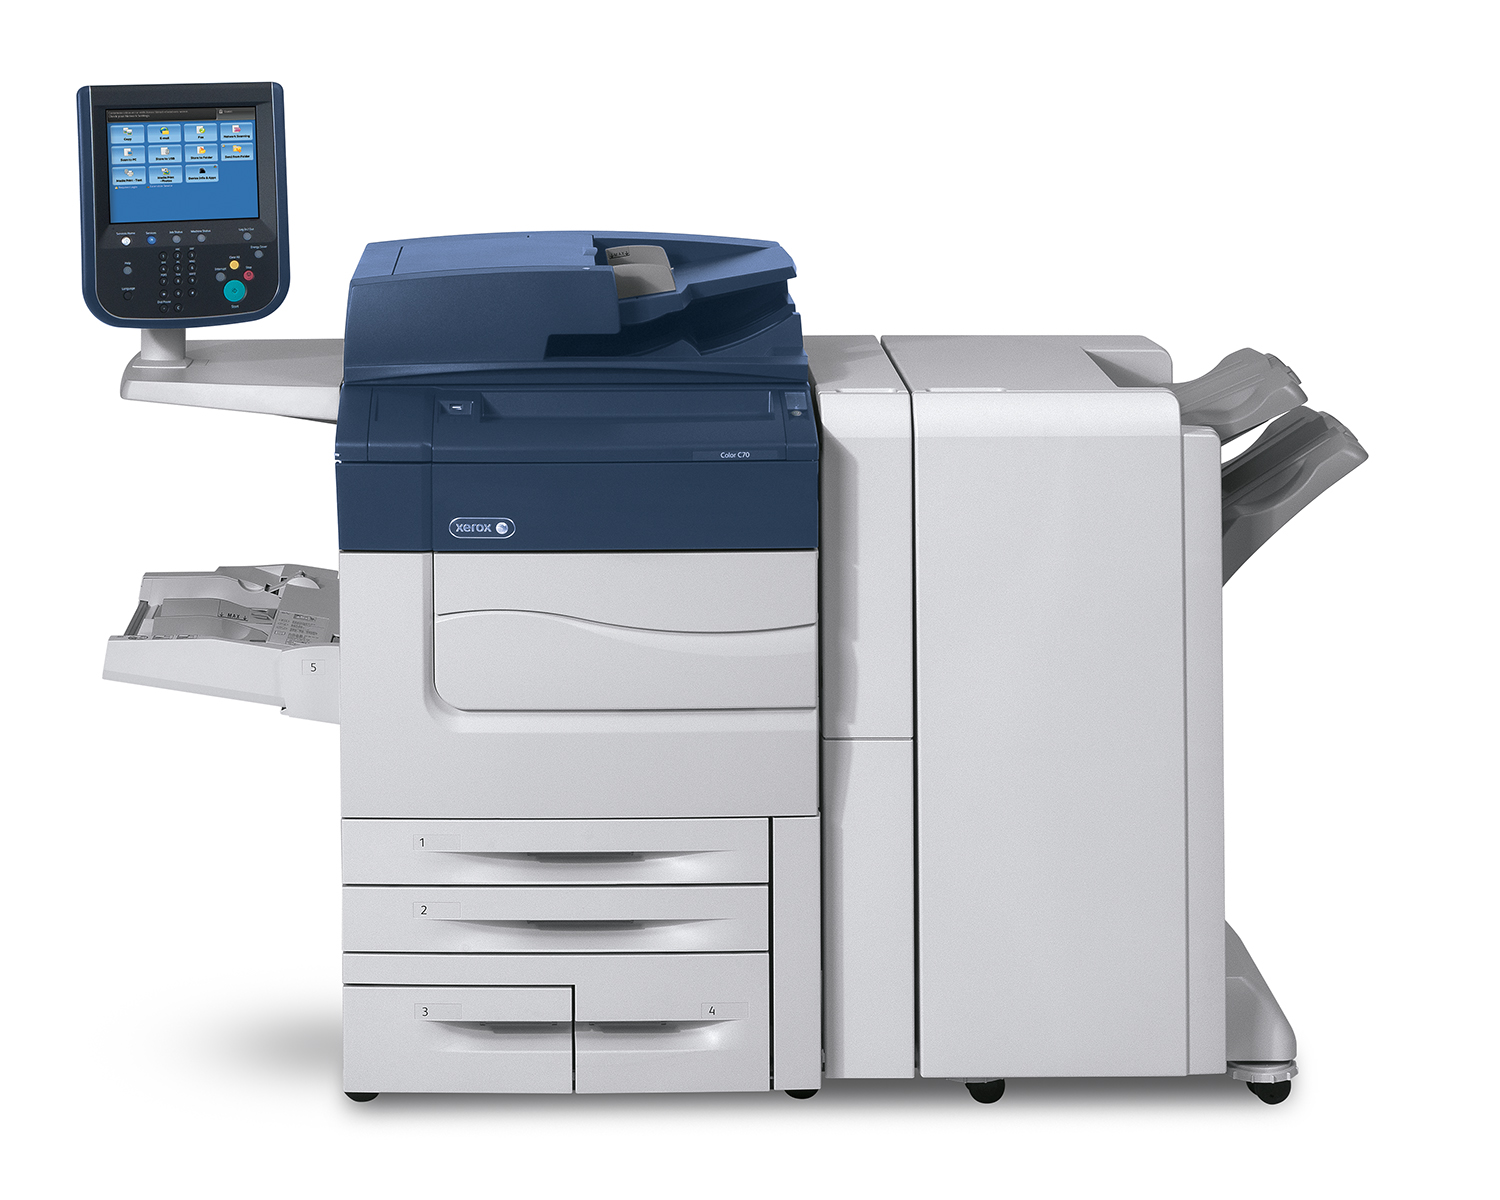 xerox 560 Copy Machine Price 25.08652 -80.44728